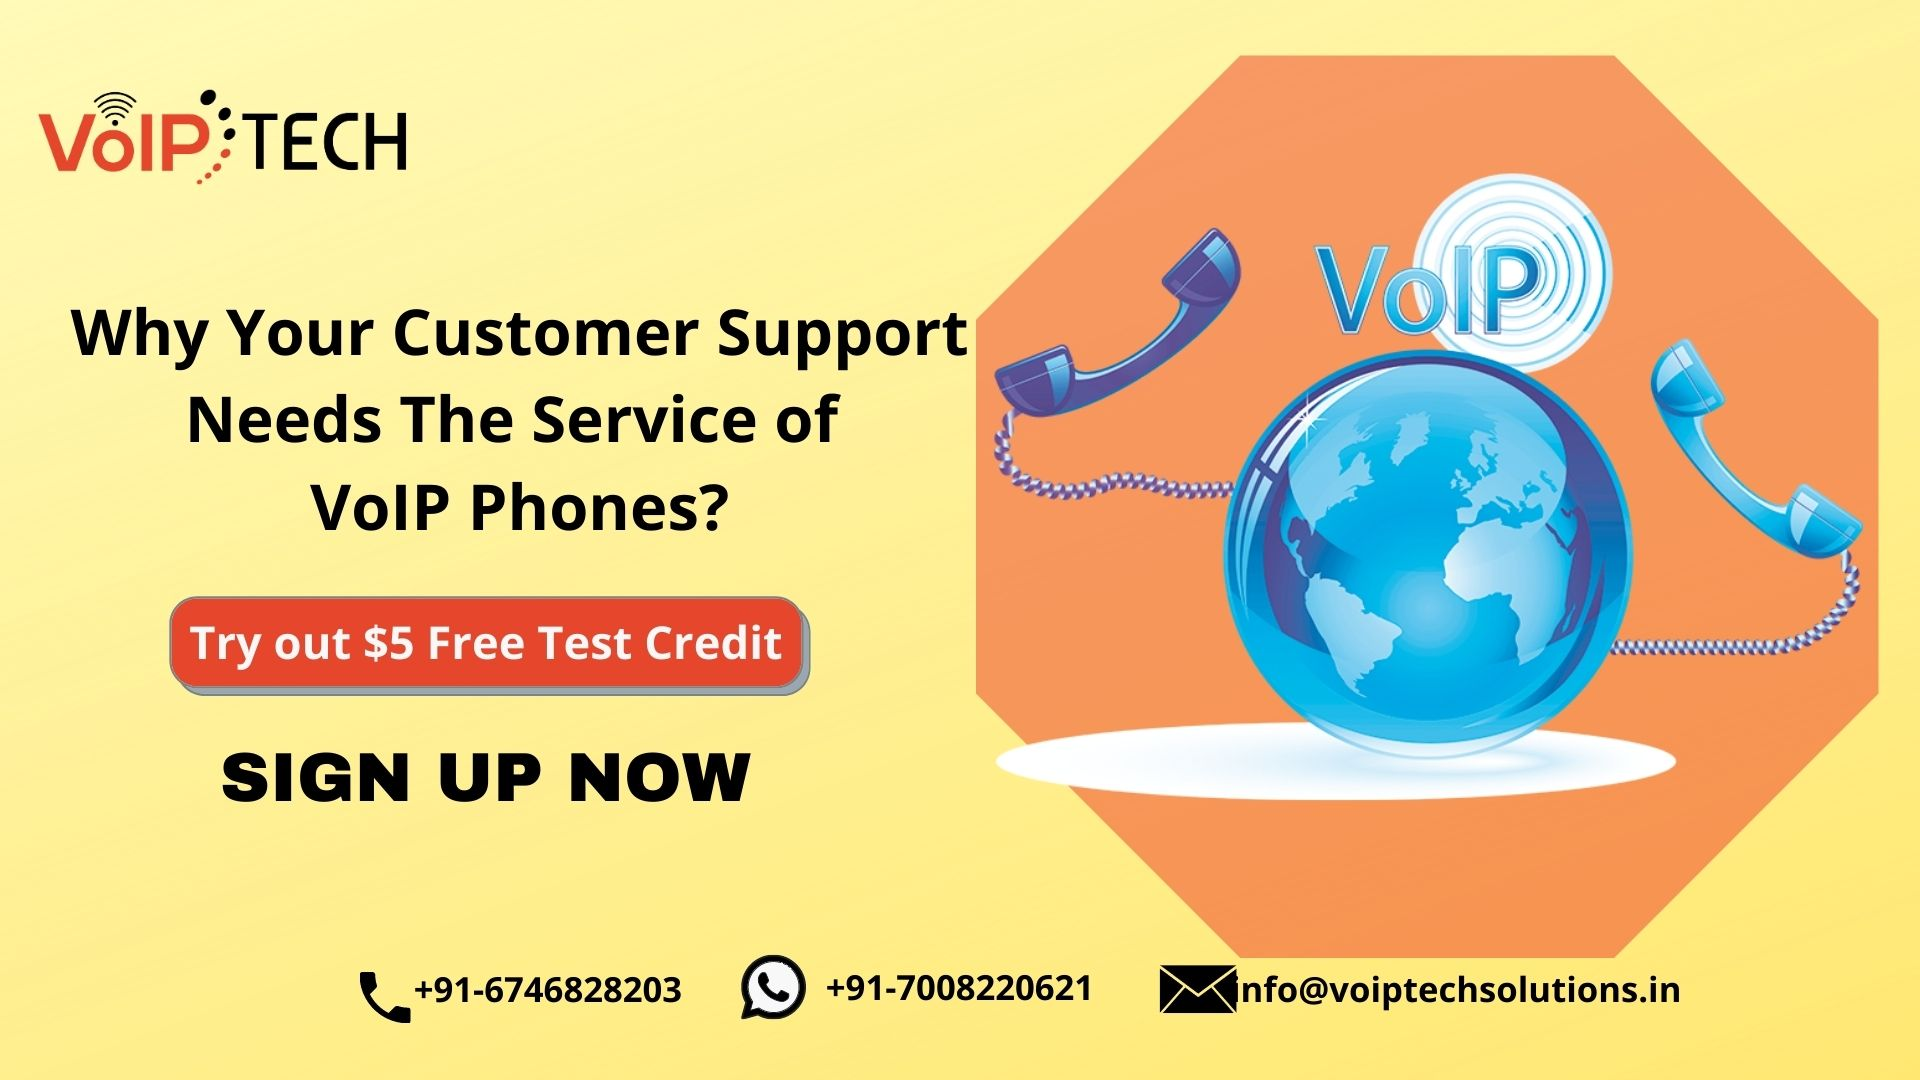 Why Your Customer Support Needs The Service of VoIP Phones?, VoIP Phone, VoIP tech solutions, vici dialer, virtual number, Voip Providers, voip services in india, best sip provider, business voip providers, VoIP Phone Numbers, voip minutes provider, top voip providers, voip minutes, International VoIP Provider